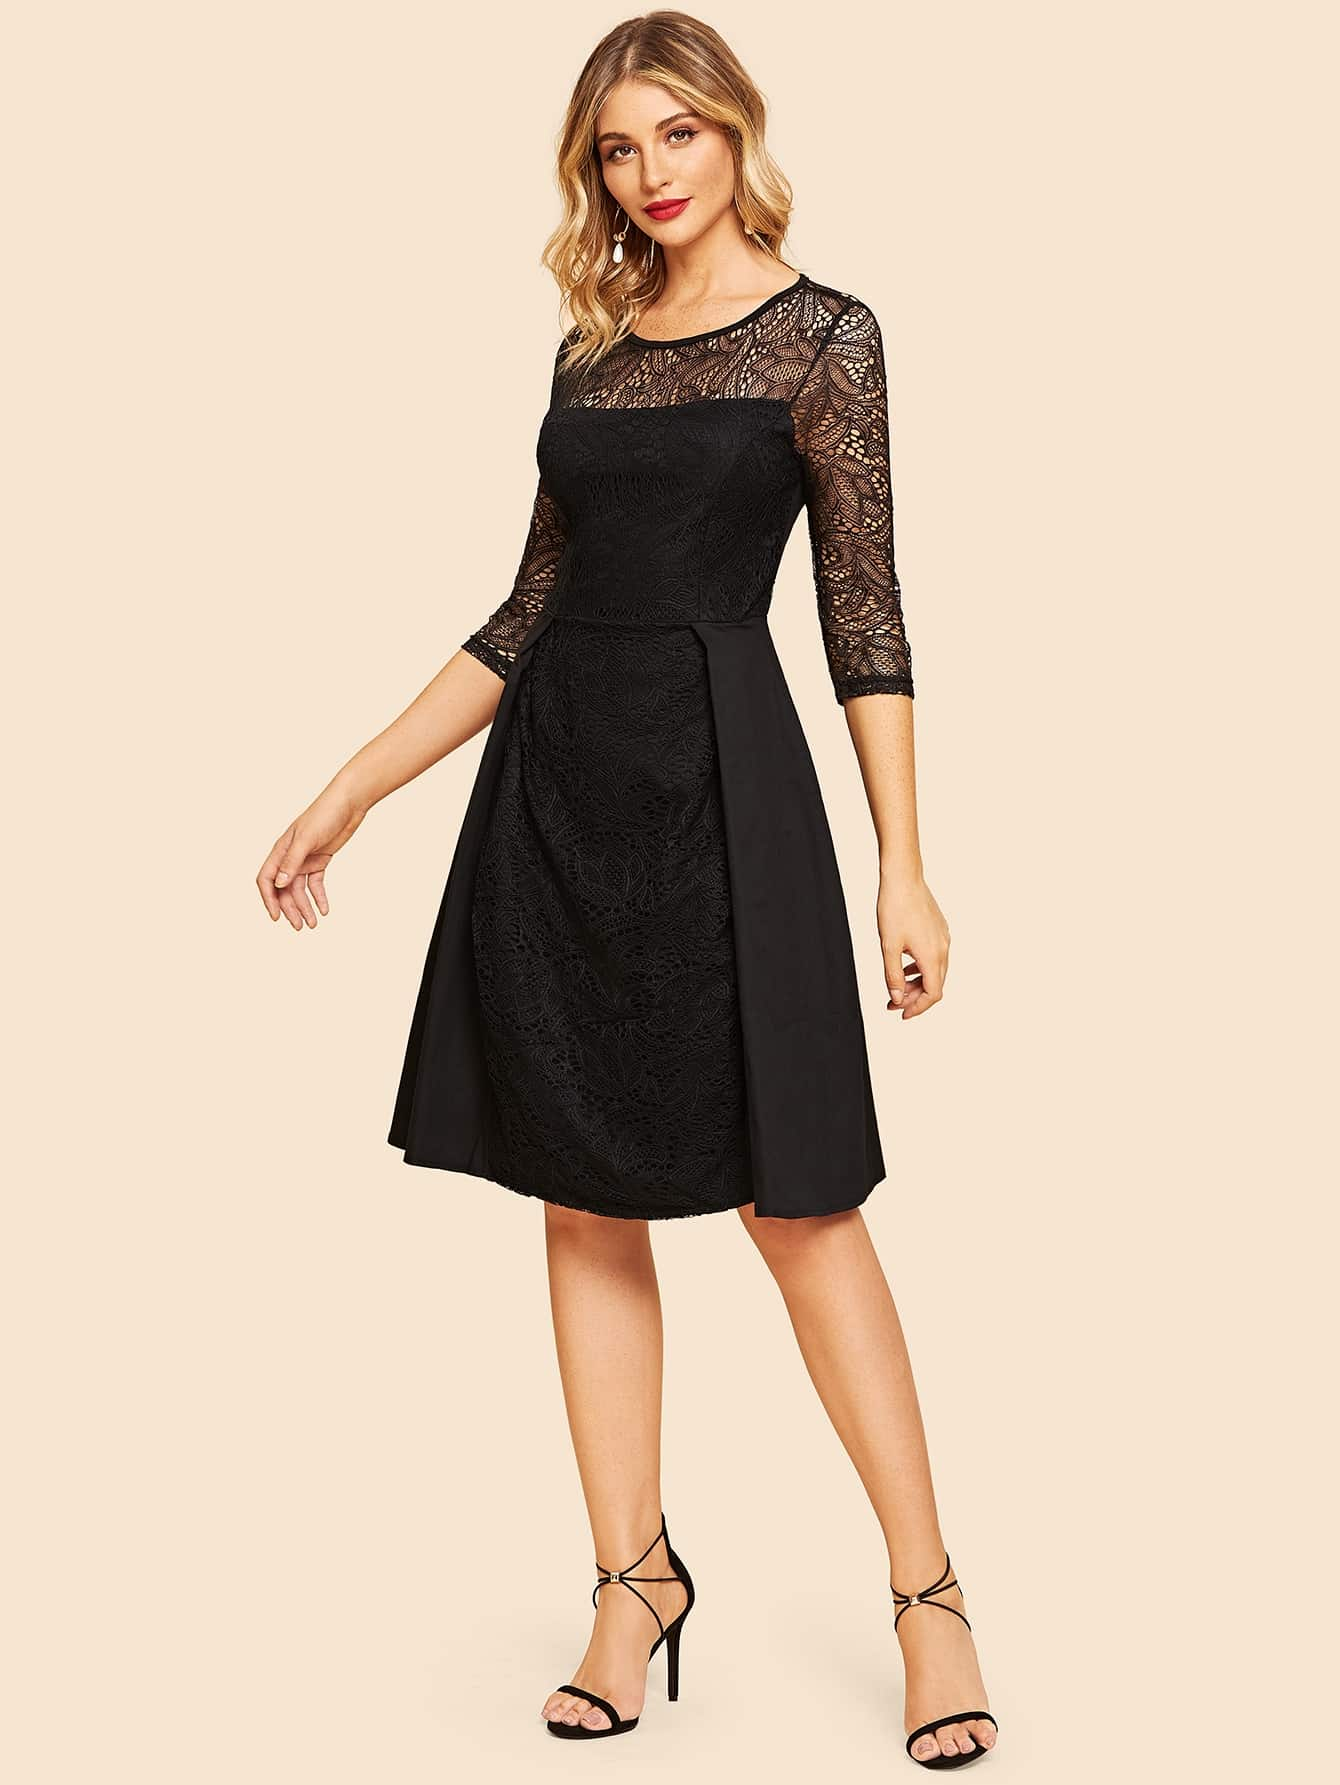 50s Lace Contrast Dress 50s Lace Contrast Dress